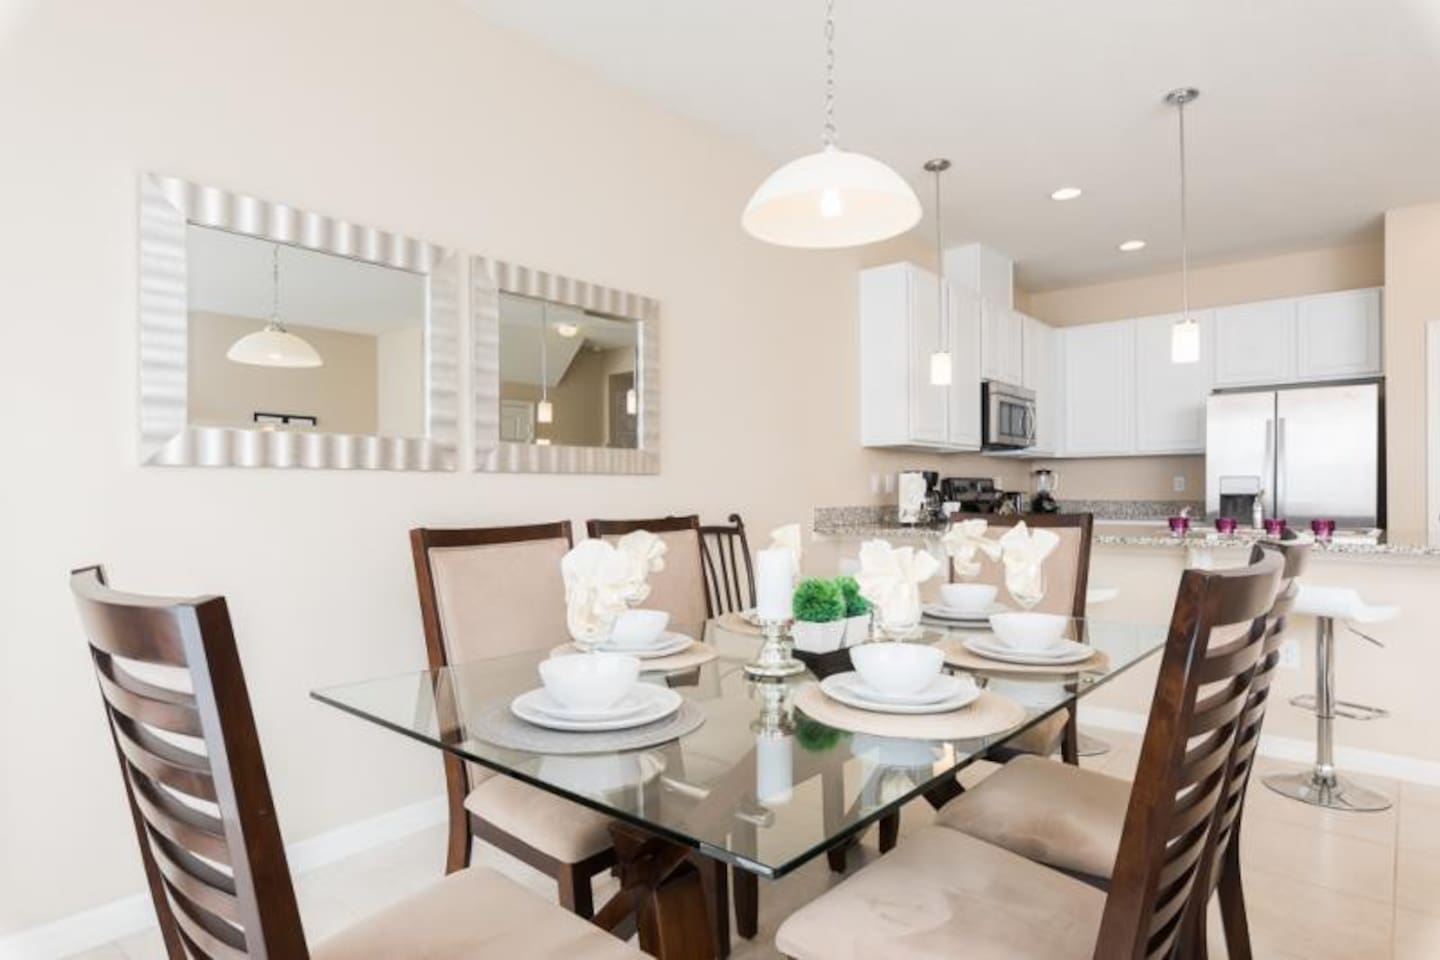 4 Bedroom 3 Bathrooms Compass Bay 3167tc Houses For Rent In  # Muebles Kissimmee